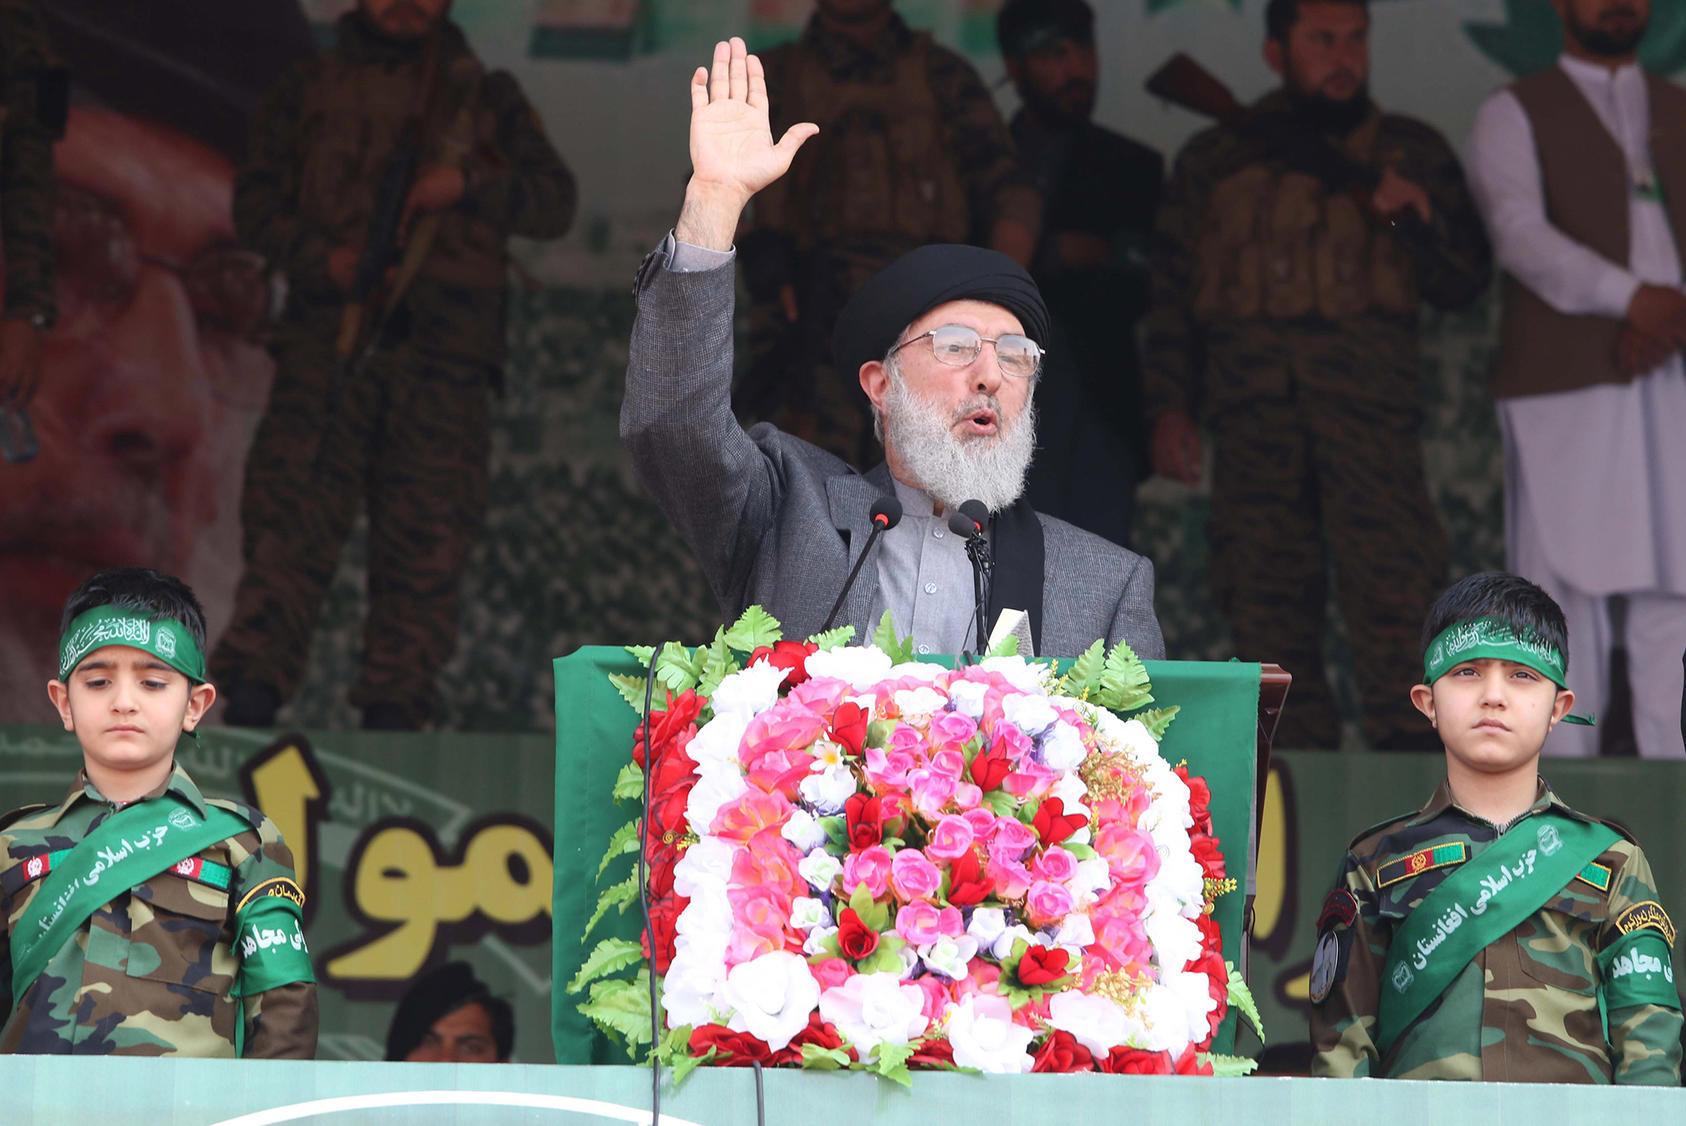 Gulbuddin Hekmatyar addresses supporters in Jalalabad, Afghanistan, in March 2018. (Photo by Ghulamullah Habibi/ EPA-EFE/ Shutterstock)